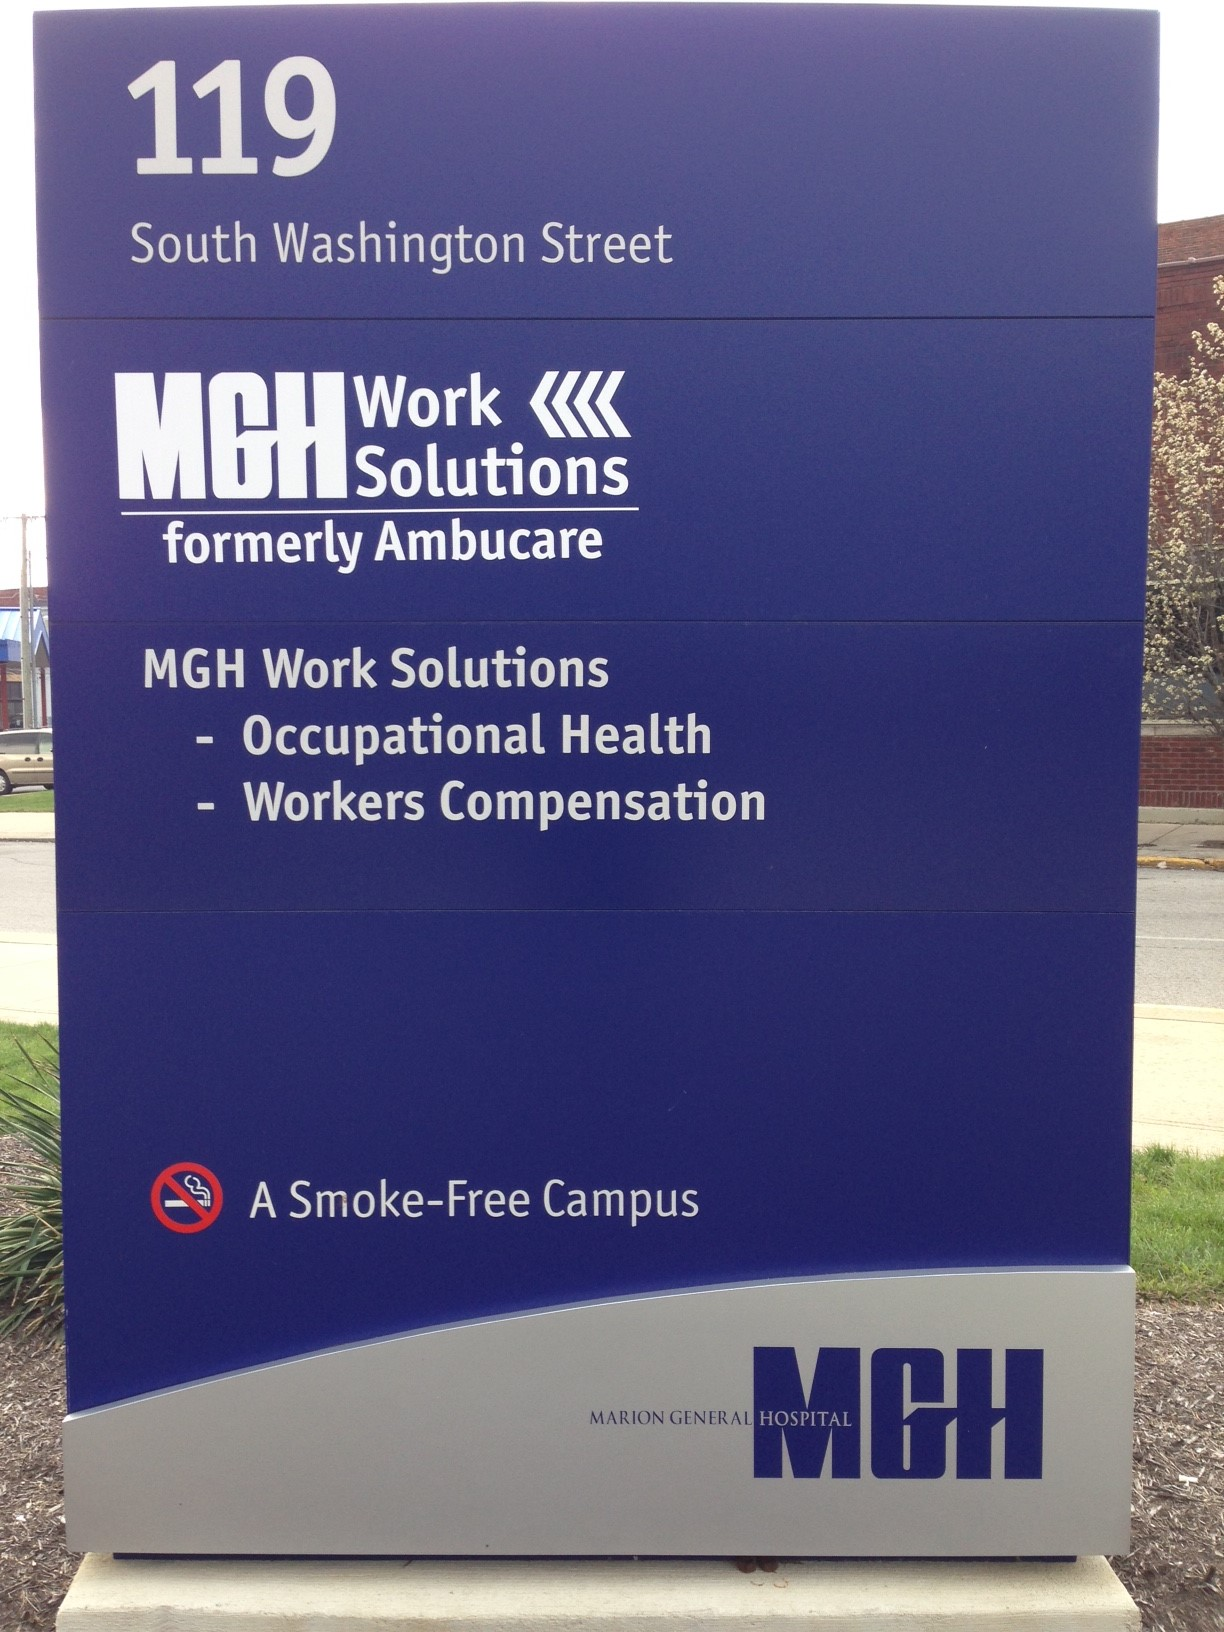 MGH Work Solutions 119 S Washington St, Marion, IN 46952 - YP com